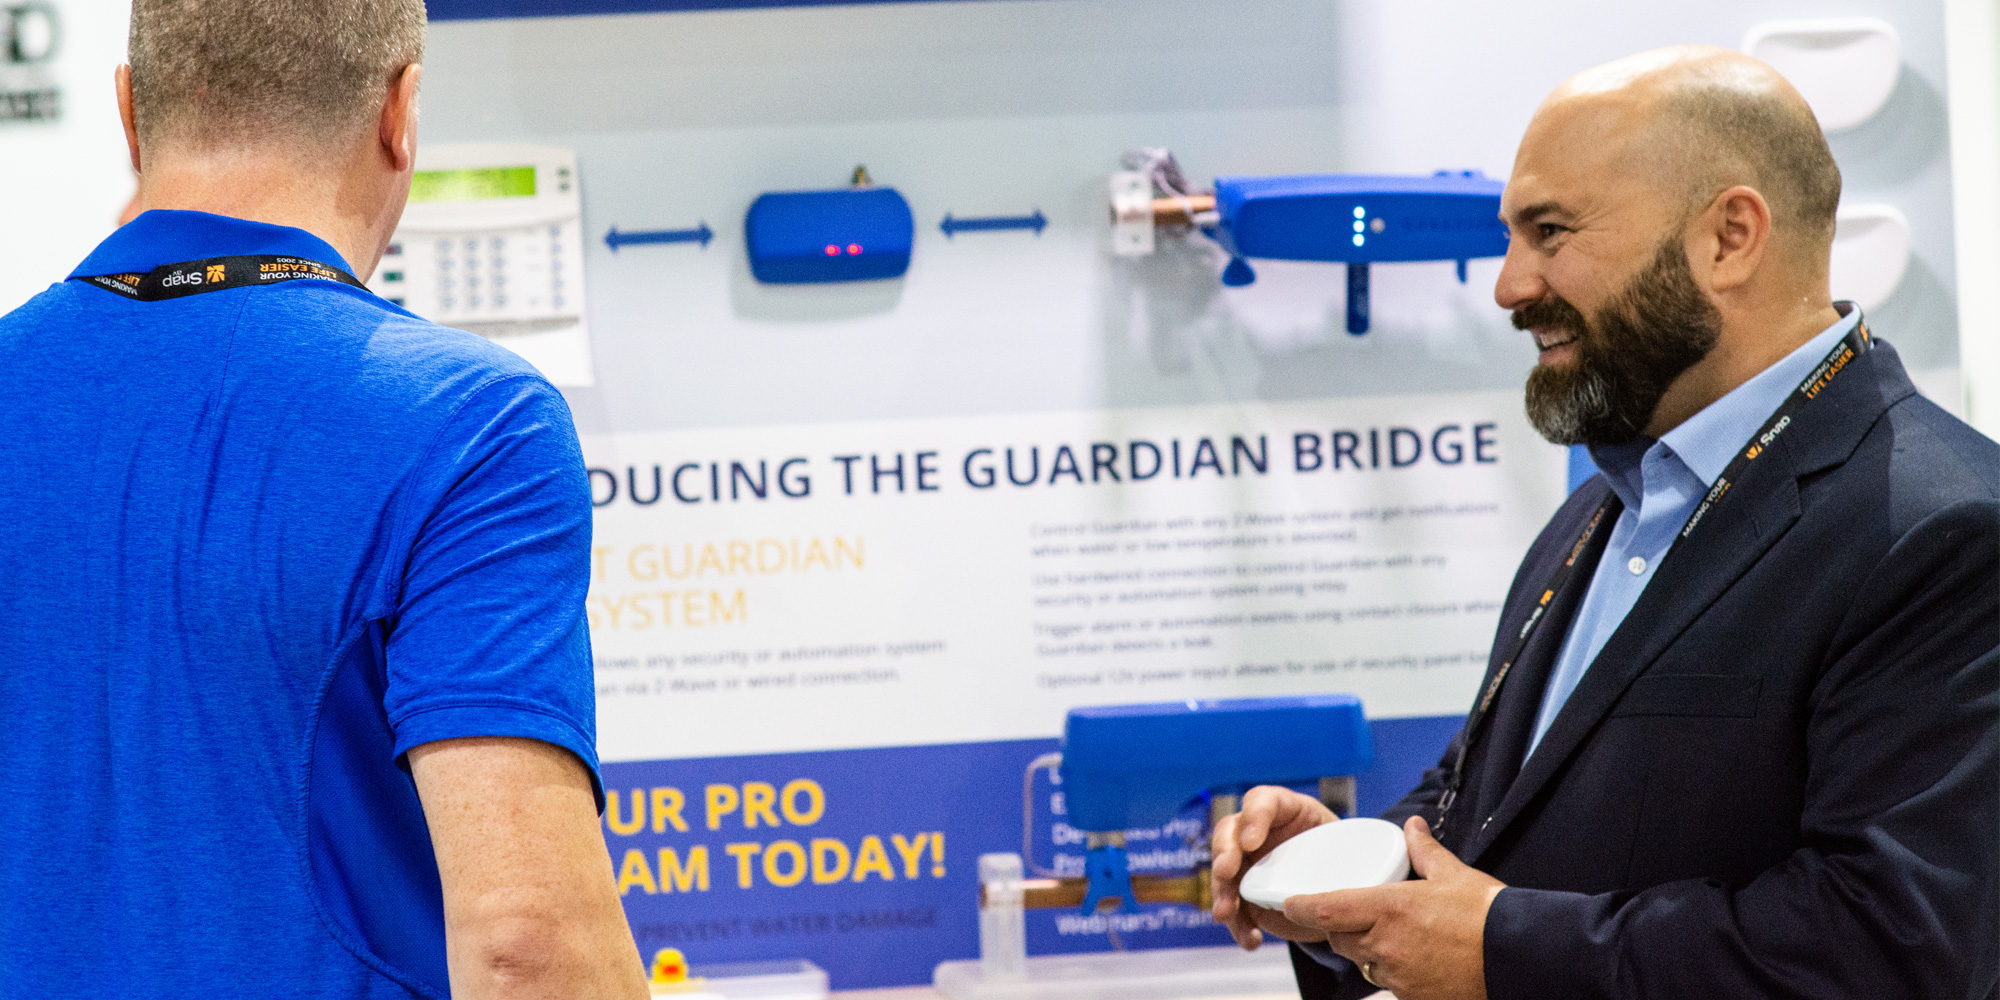 Jason Simms promoting the Guardian Leak Prevention System at the 2018 CEDIA event.